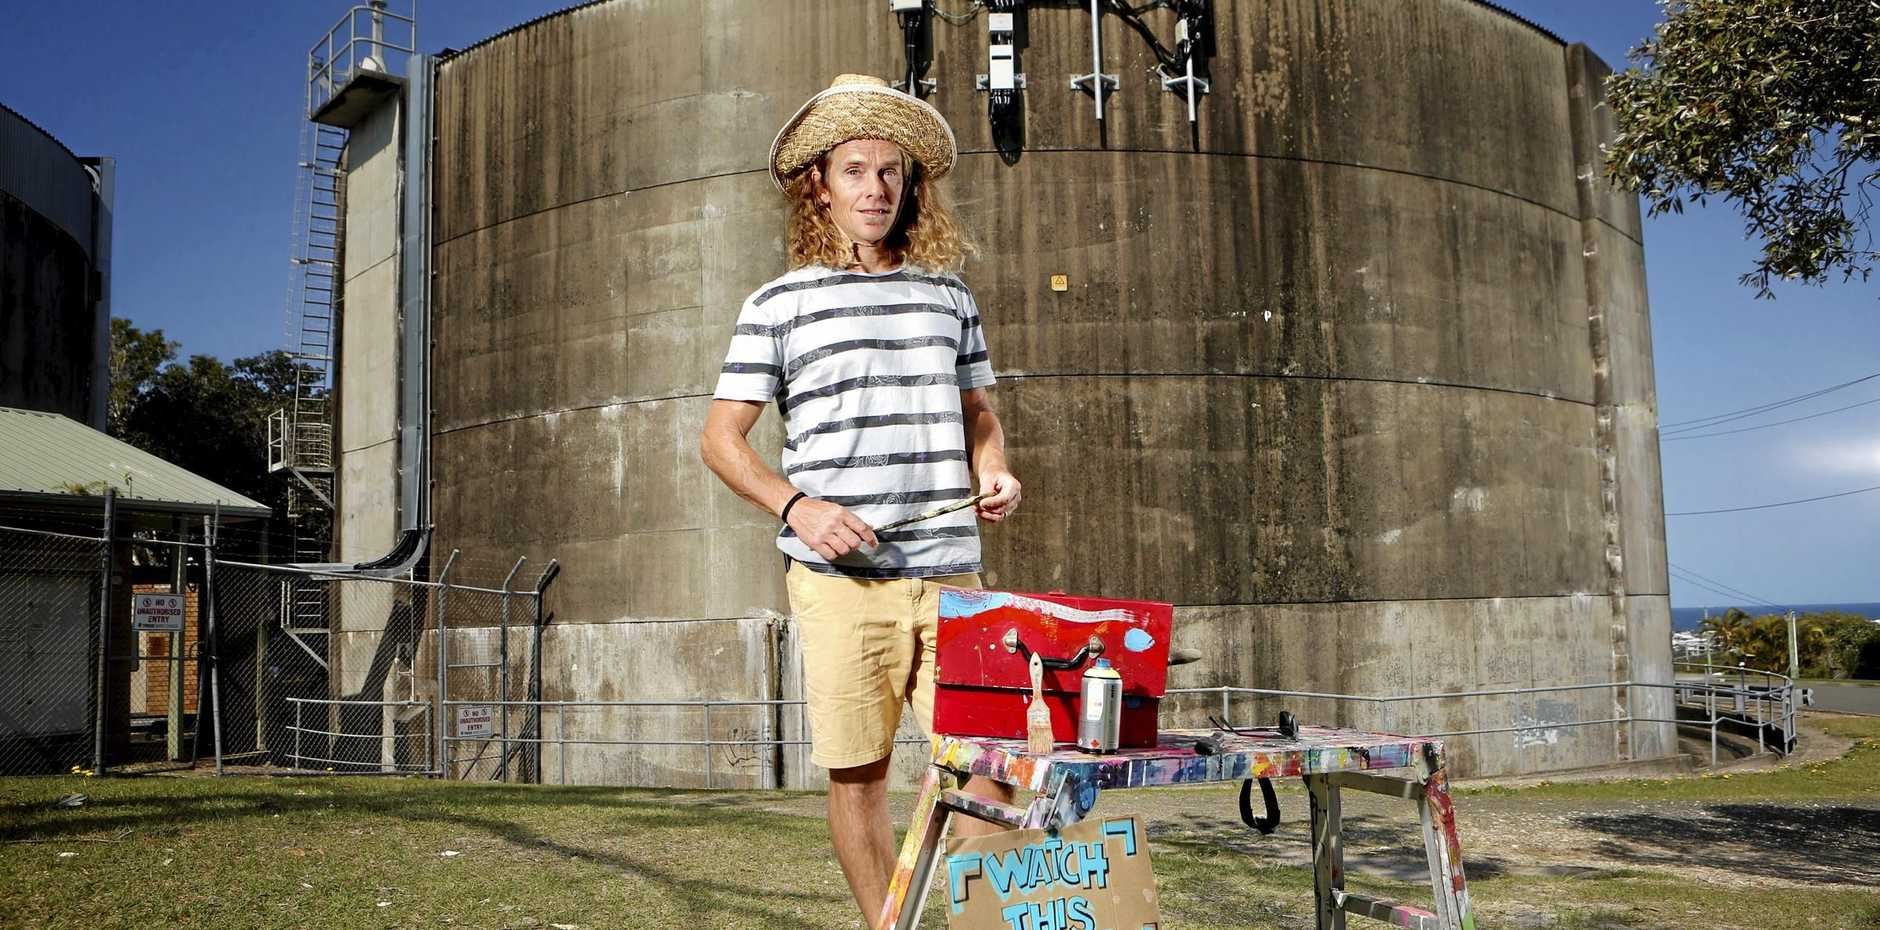 Local artist Glenn Case believes Kingscliff's water tower could be brought to life by the same mural art that has transformed grain silos across Australia into visual masterpieces.